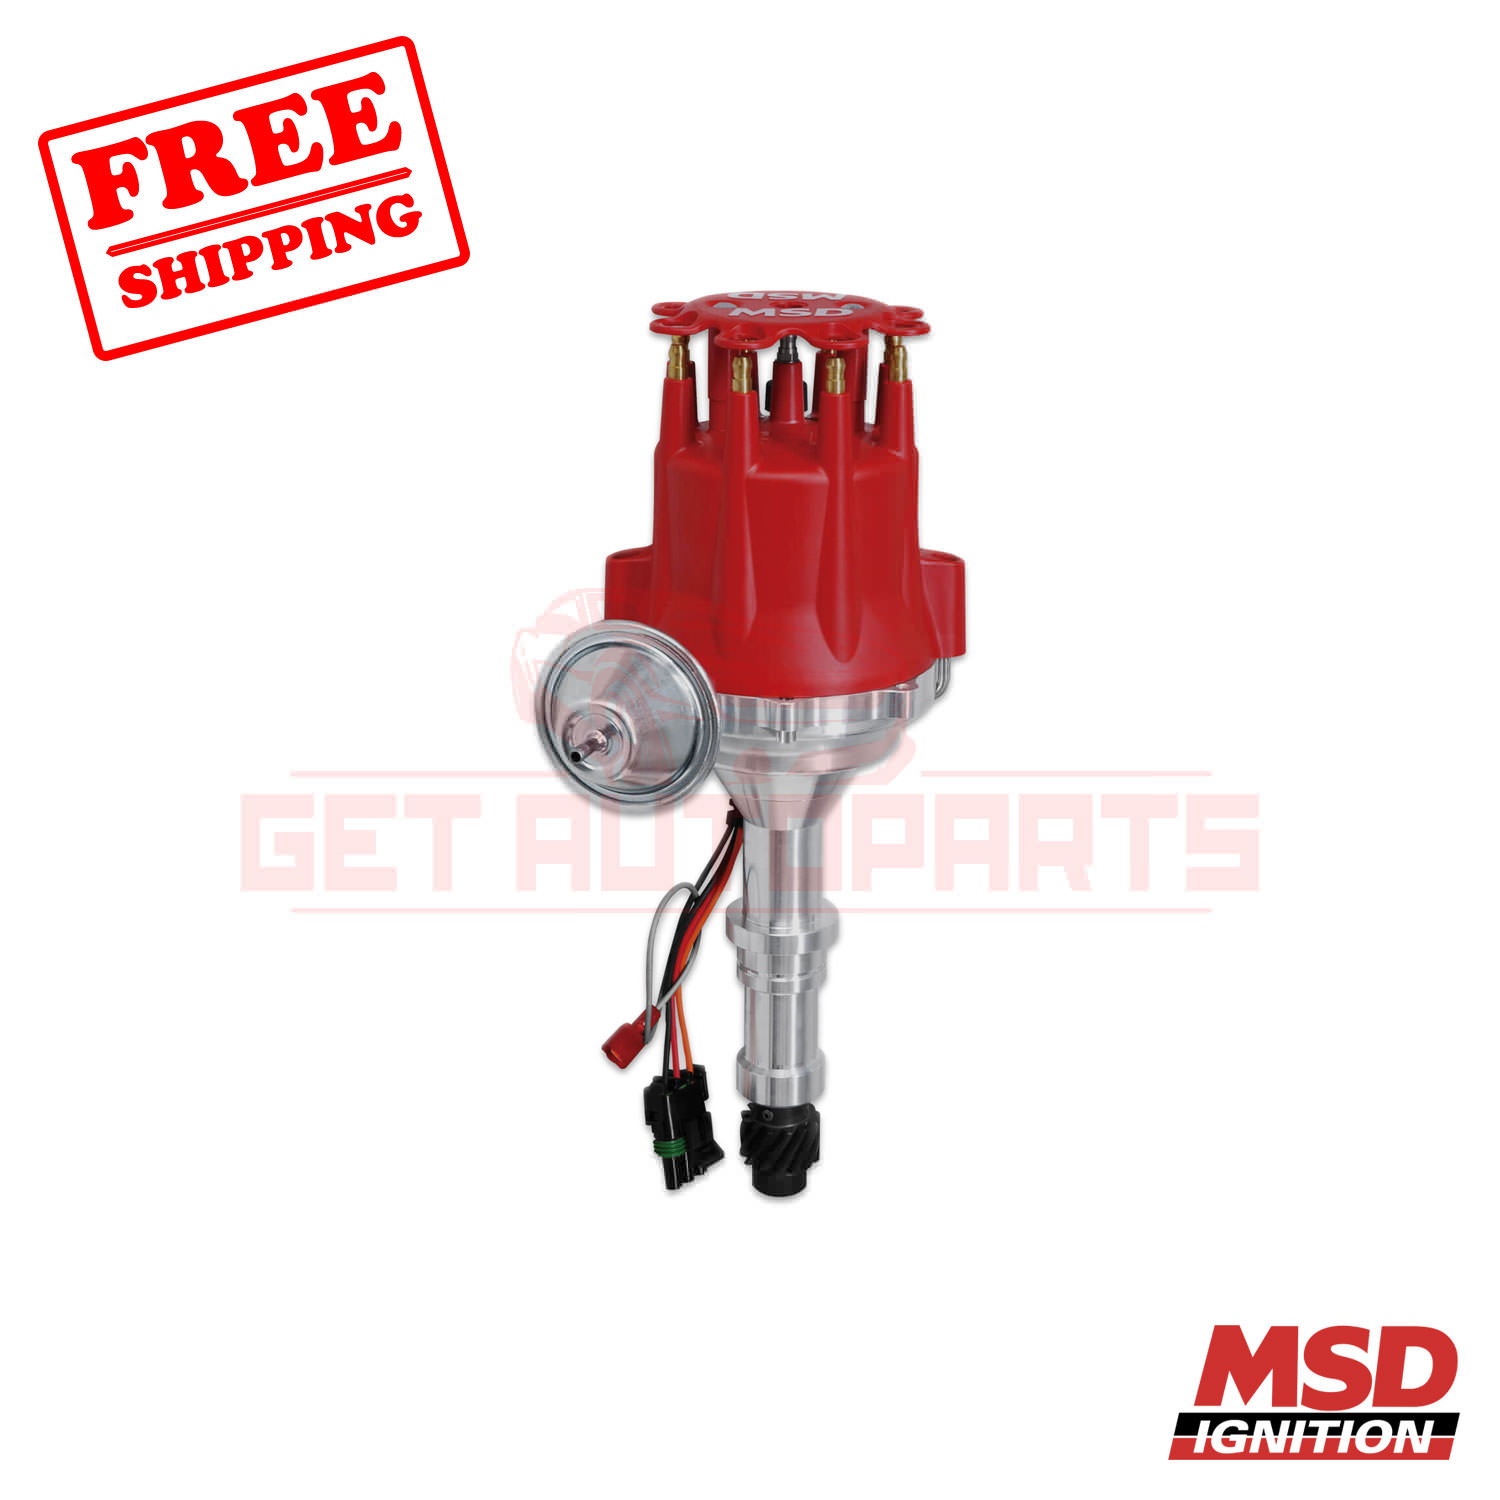 New Ignition Distributor for 1982-1991 Buick Chevrolet Pontiac GMC 2.5L 1103625